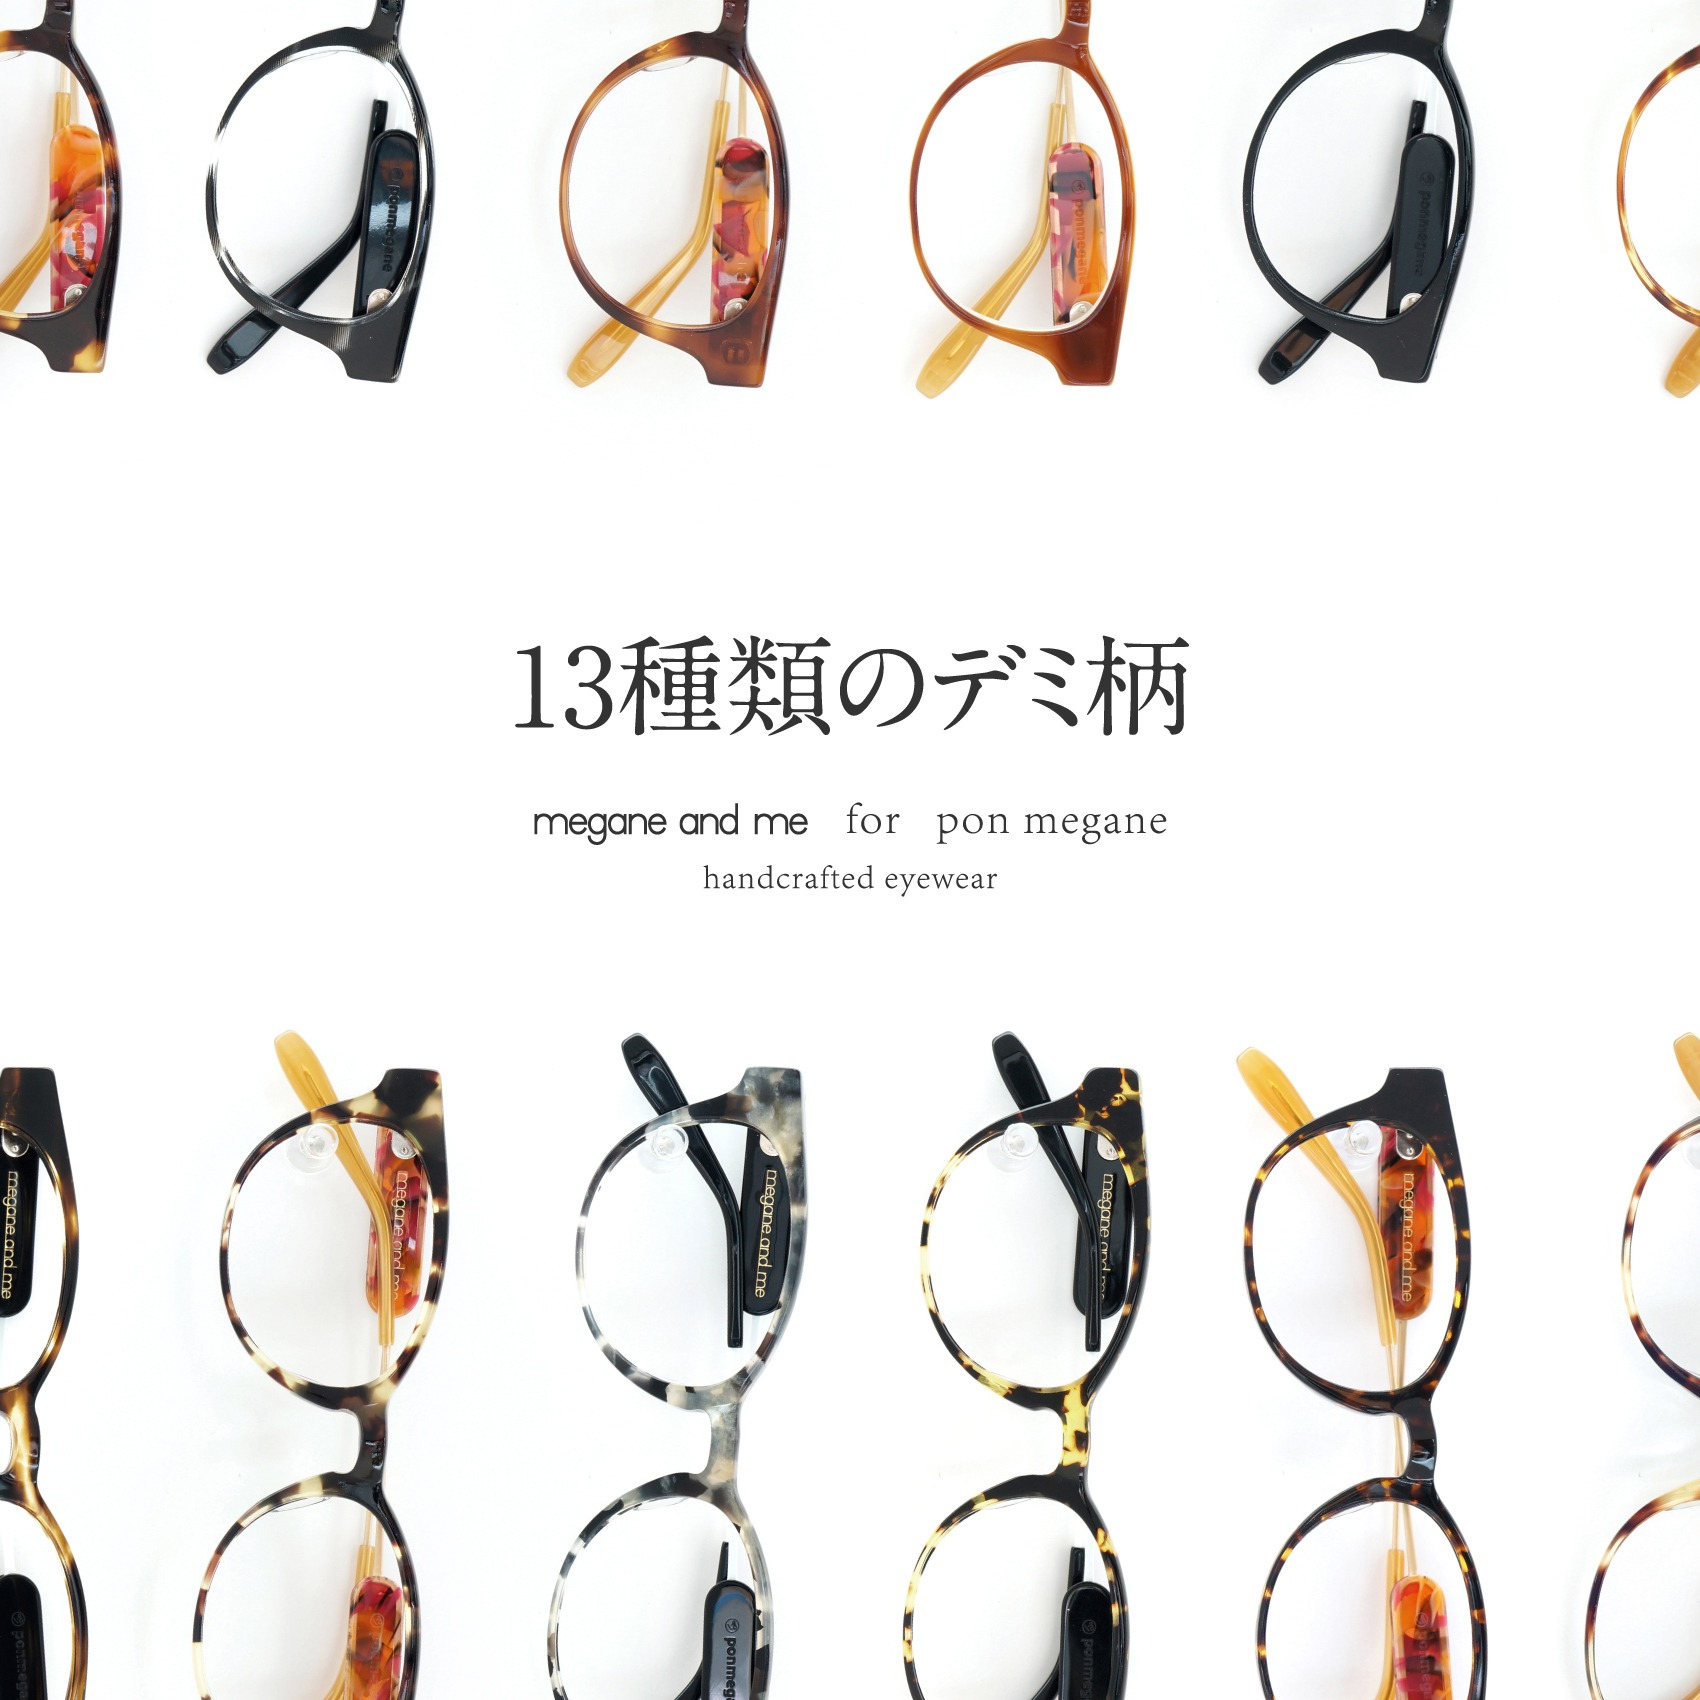 megane and me for ponmegane